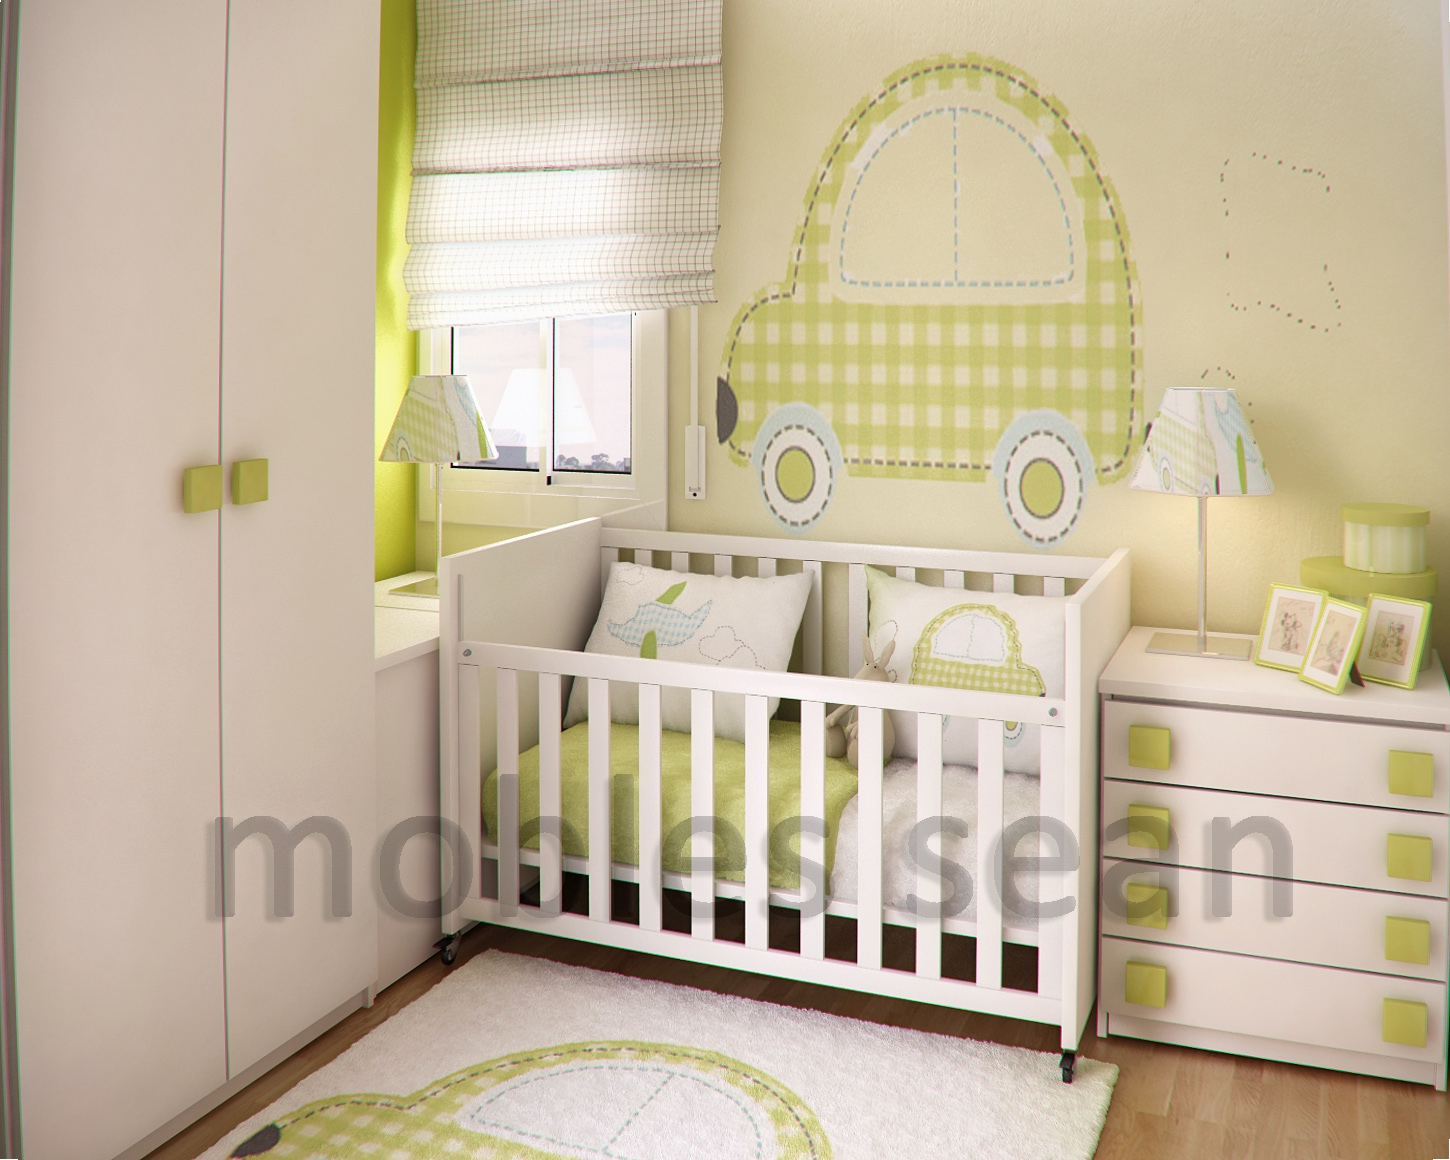 Space saving designs for small kids rooms for Bedroom ideas for babies